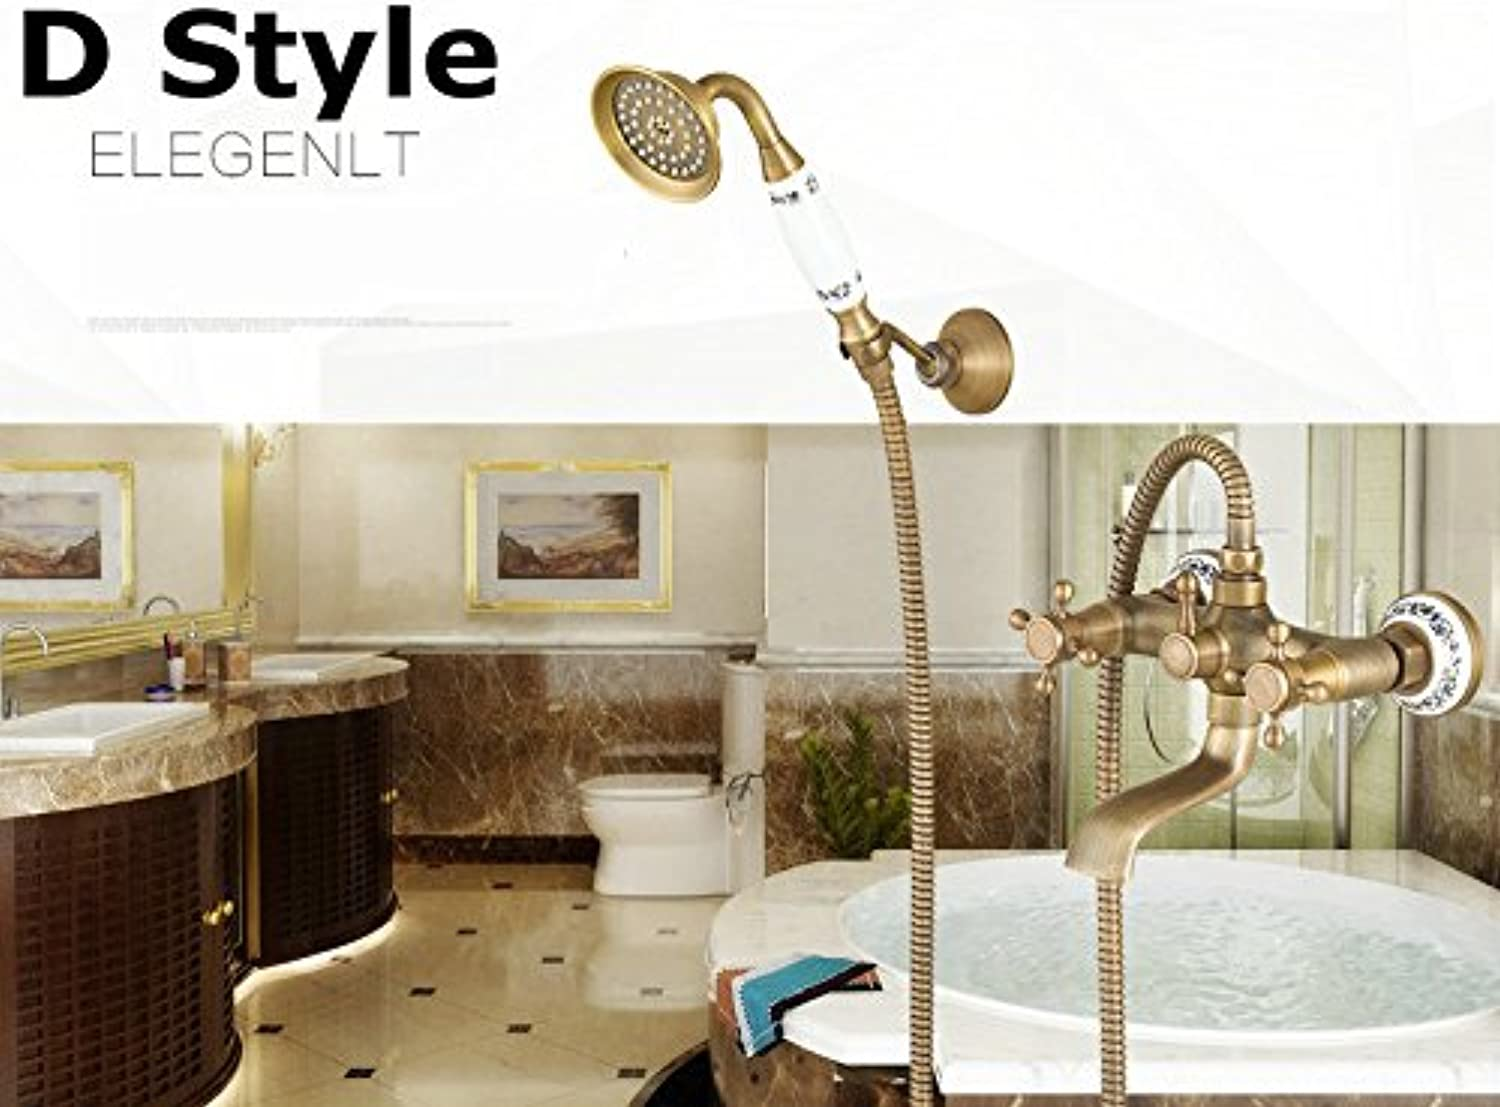 Maifeini Faucet, Faucet, Faucet, Faucet, Faucet, Faucet Antique Brushed Brass Bathtub Mixer Wall Hung Bathroom Basin Mixer Tap Crane With Hand Shower Head Shower And Bathtub Mixer Style